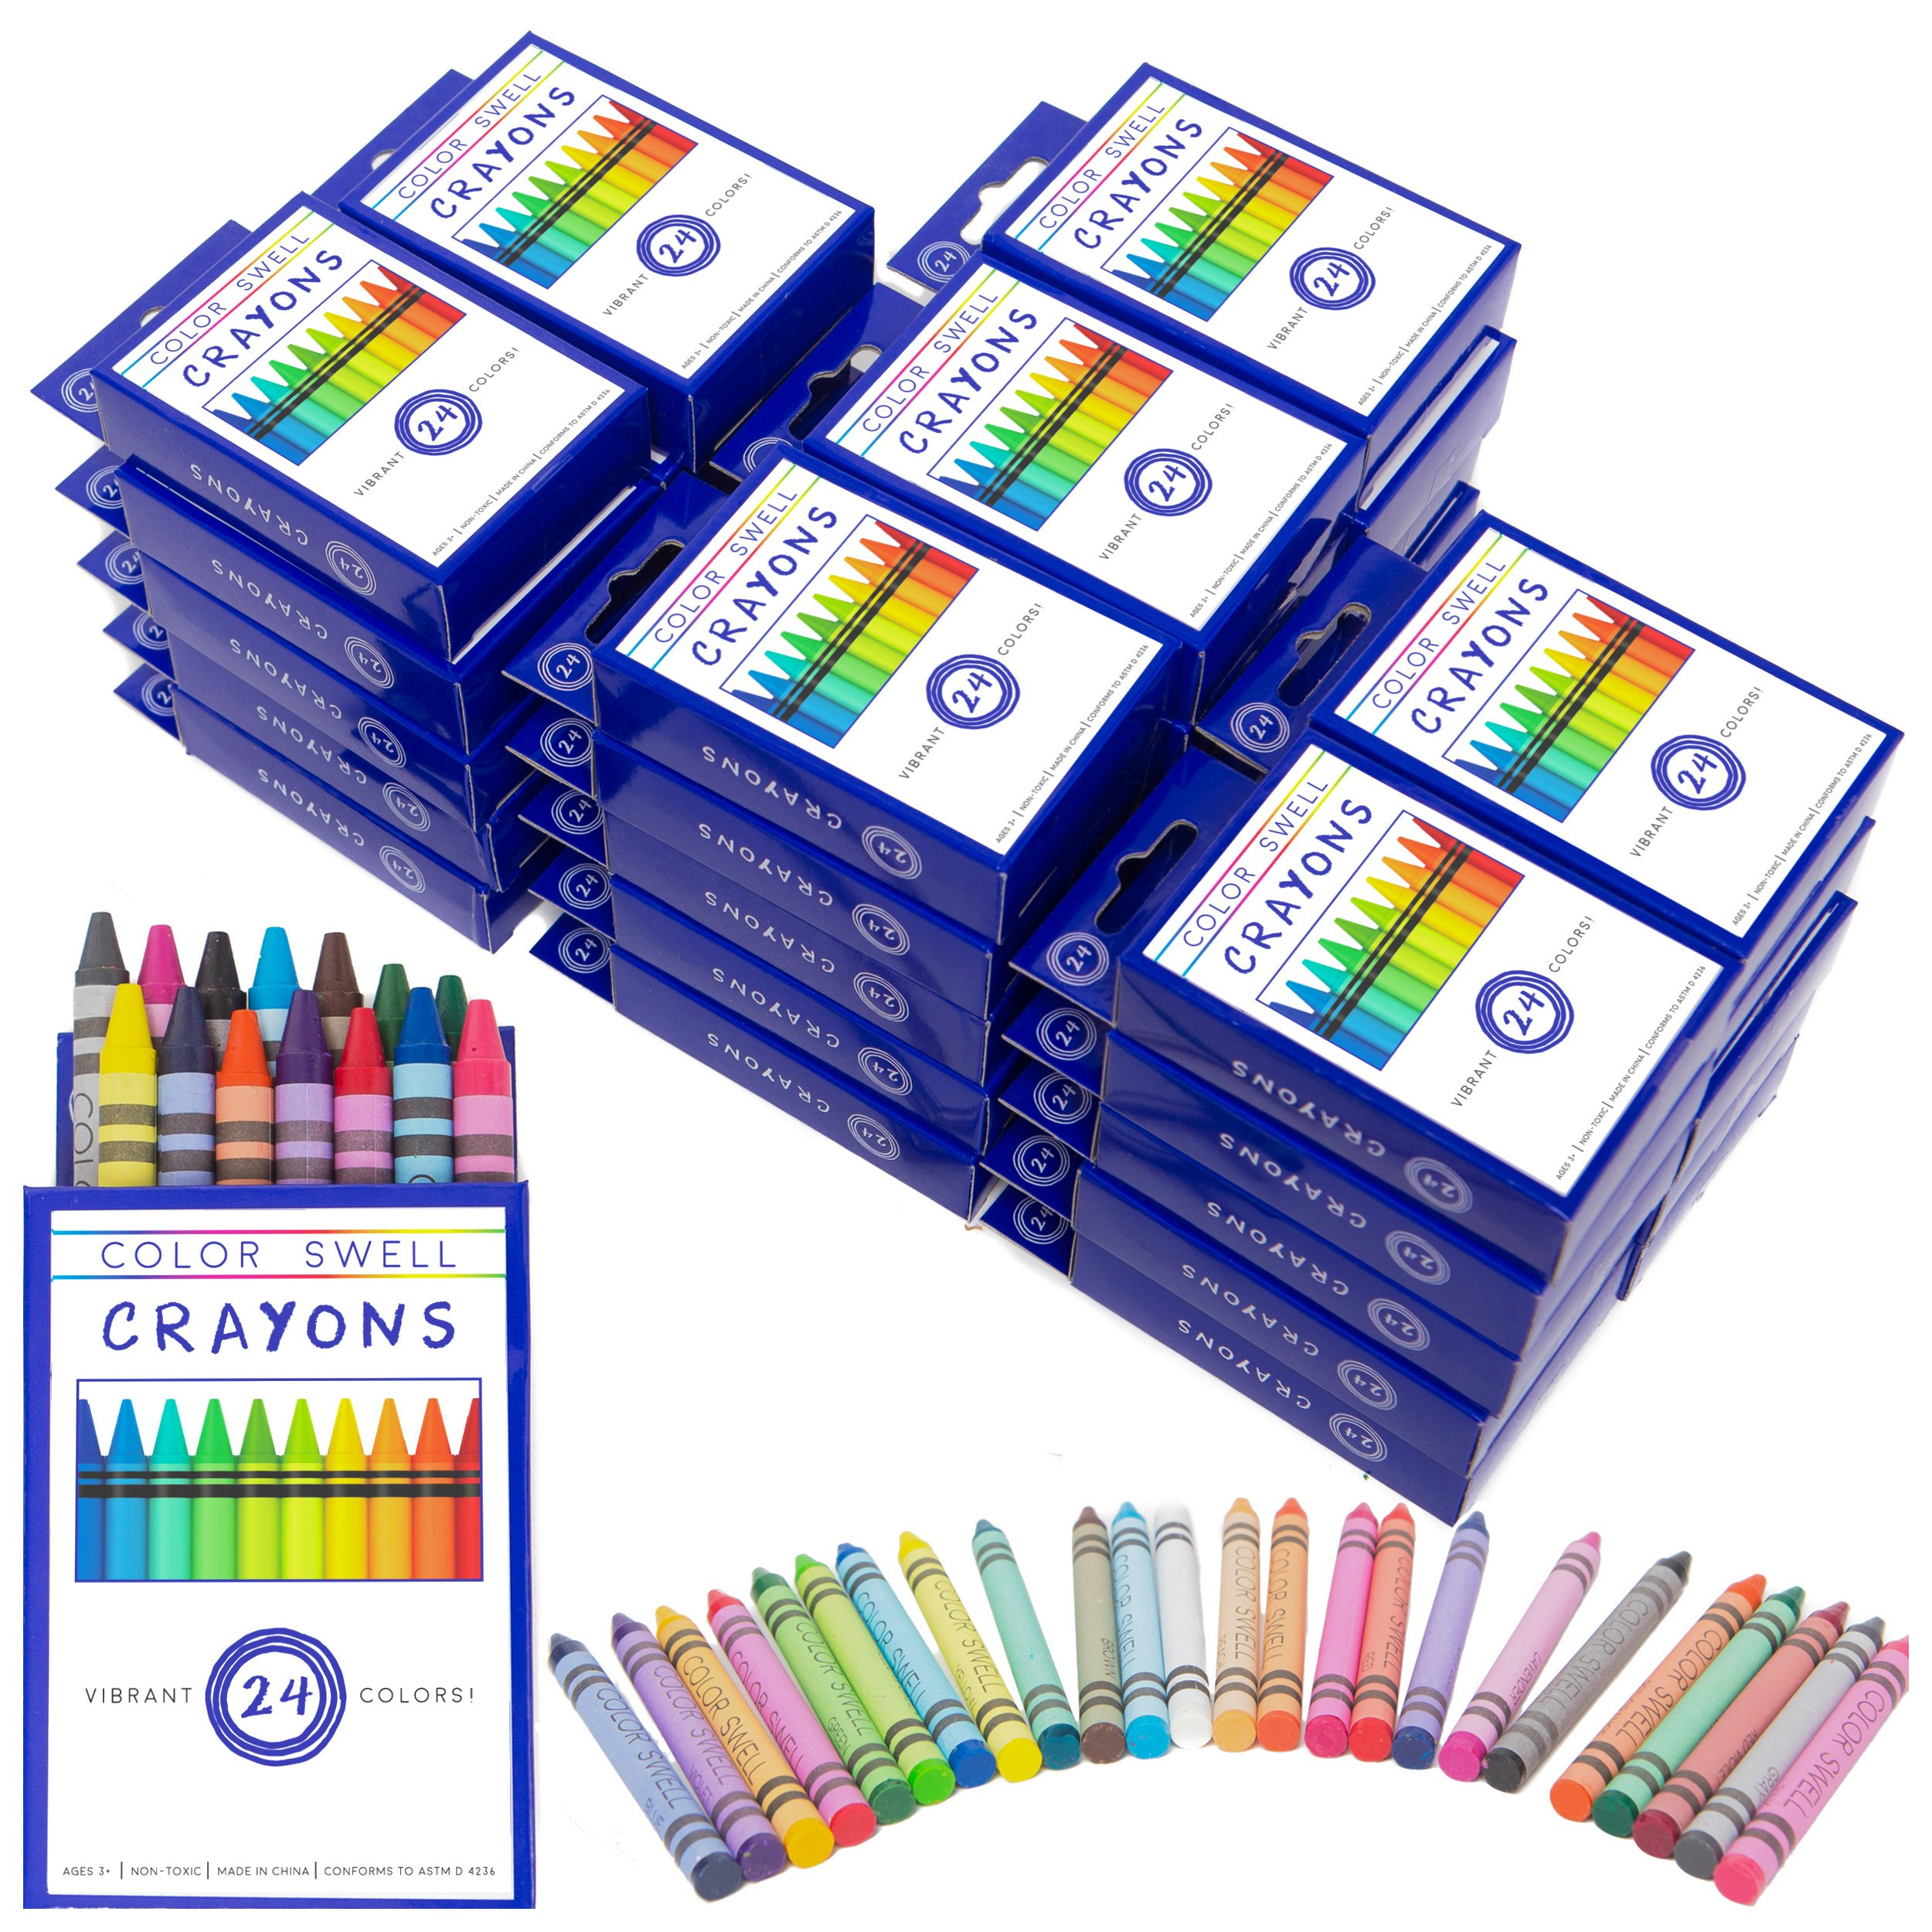 Color Swell Crayons Bulk Packs - 36 Boxes of 24 Vibrant Colored Crayons of Teacher Quality Durable Classroom Pack for Kids Students Party Favors by Color Swell